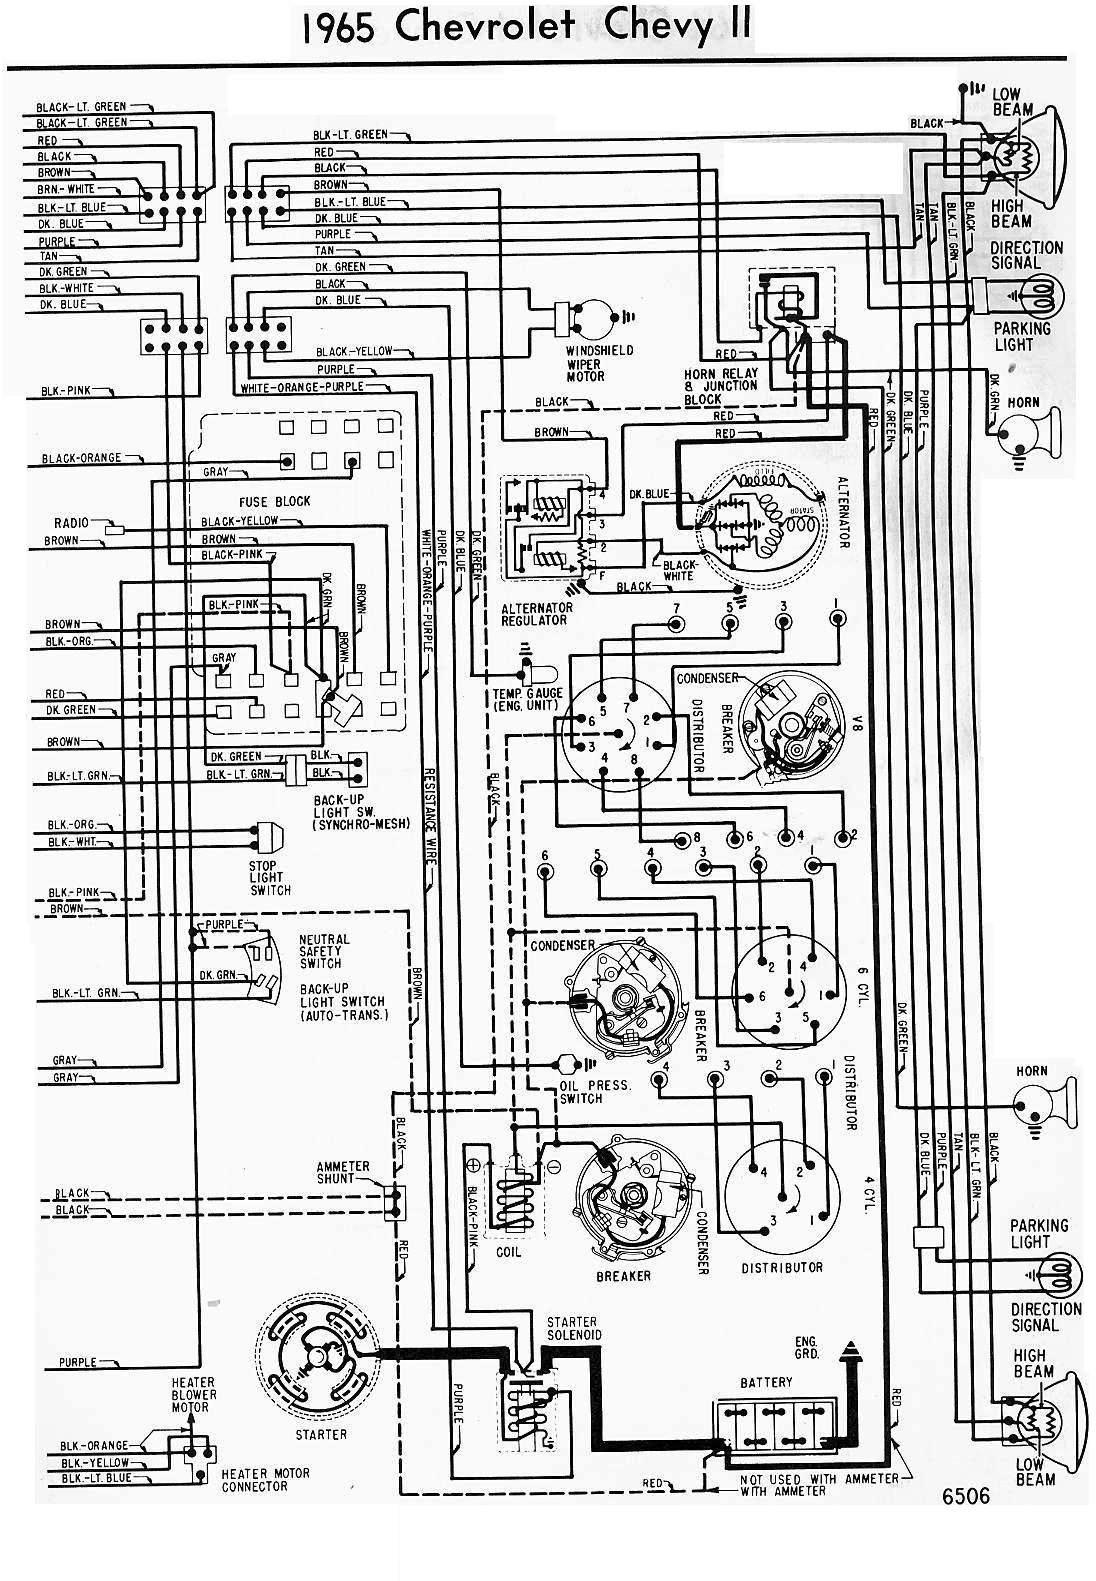 1965 Chevrolet Chevy II Wiring Diagram | All about Wiring Diagrams